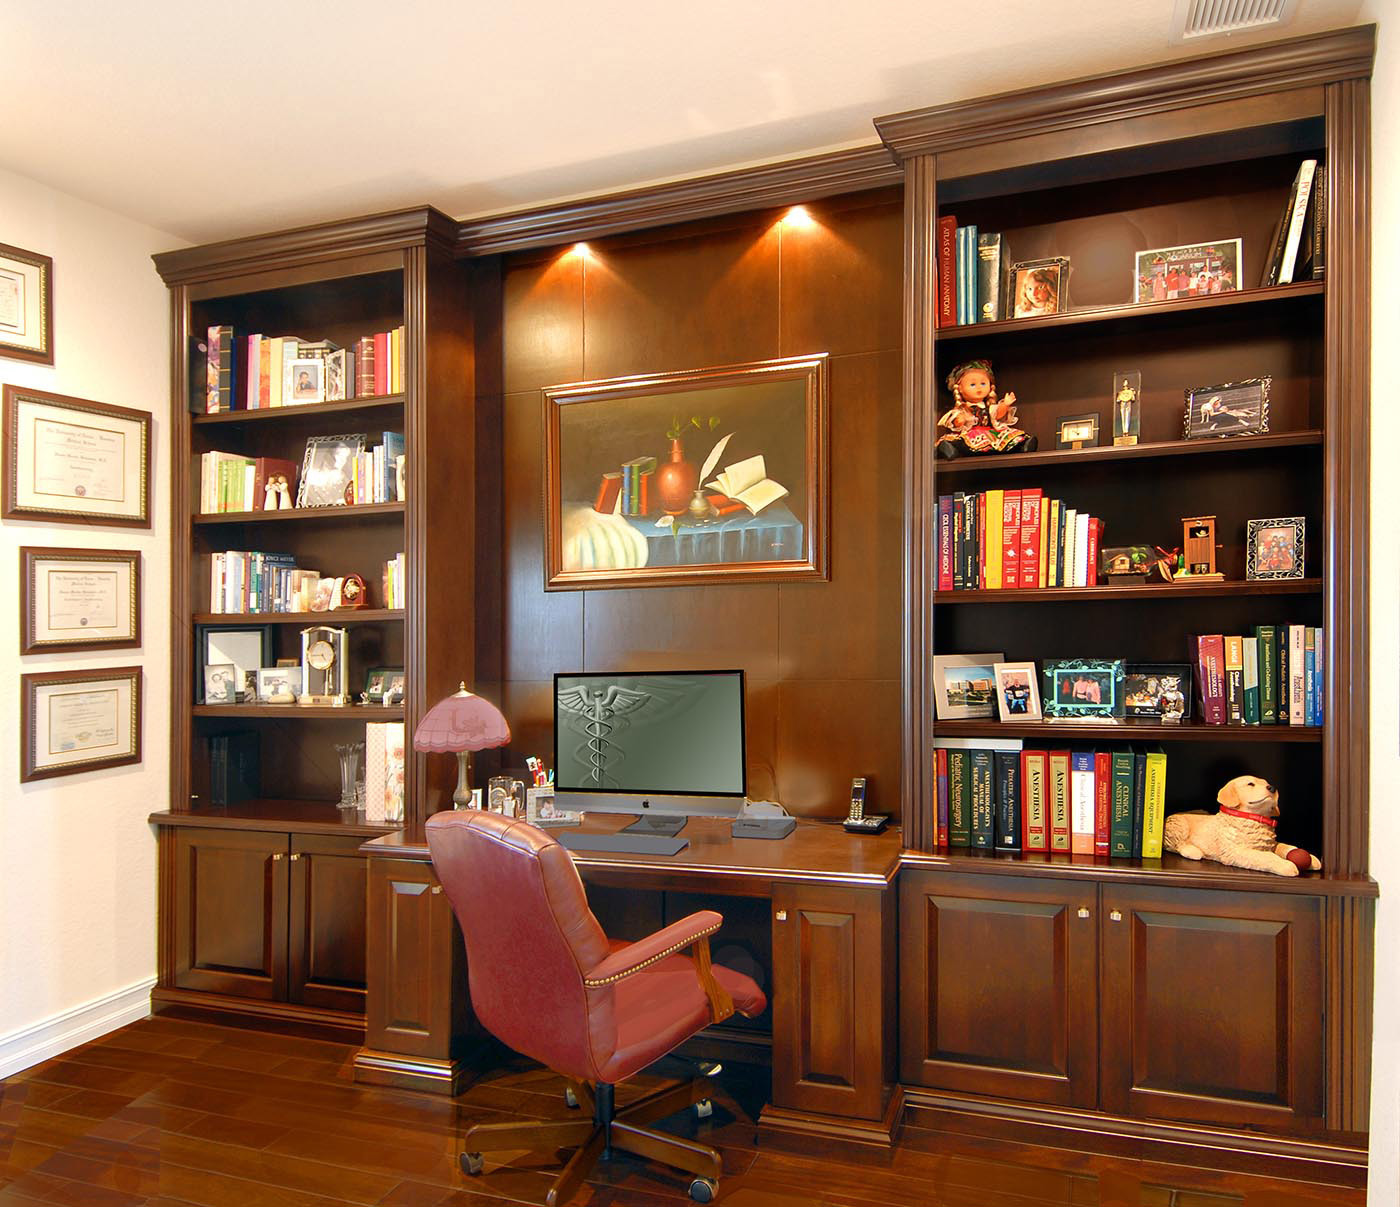 Bookcases on walls